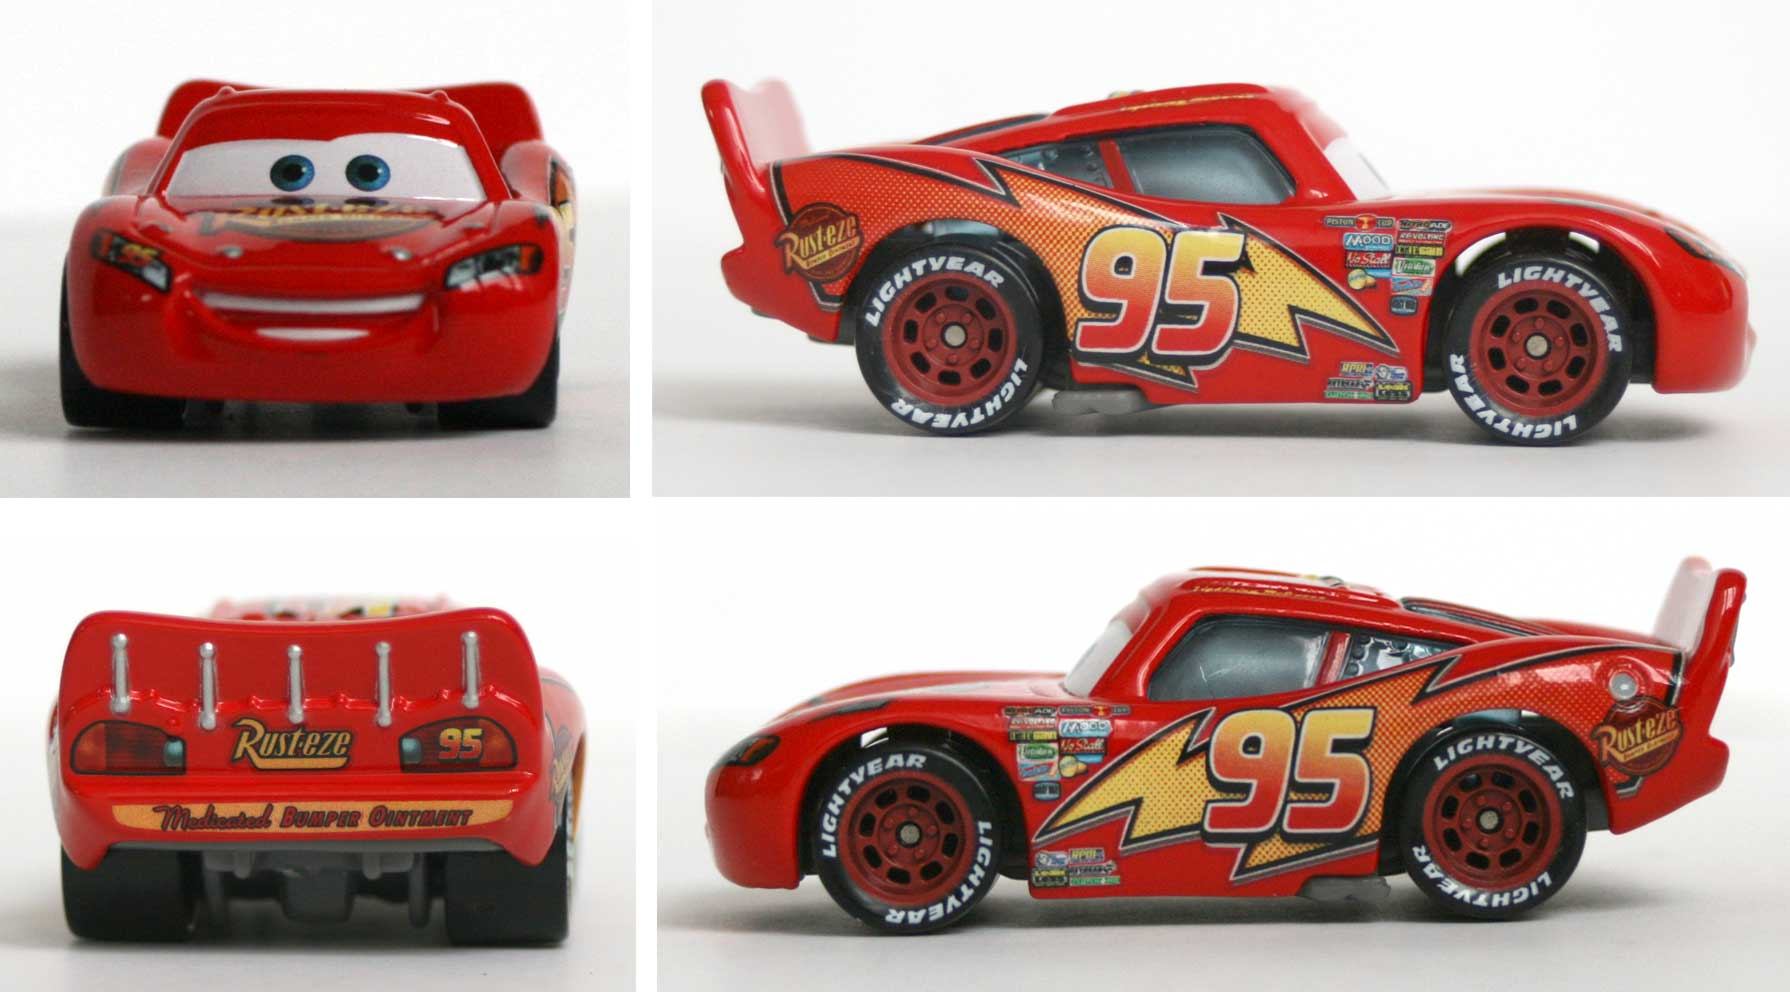 mattel cars supercharged flash mcqueen 2007. Black Bedroom Furniture Sets. Home Design Ideas